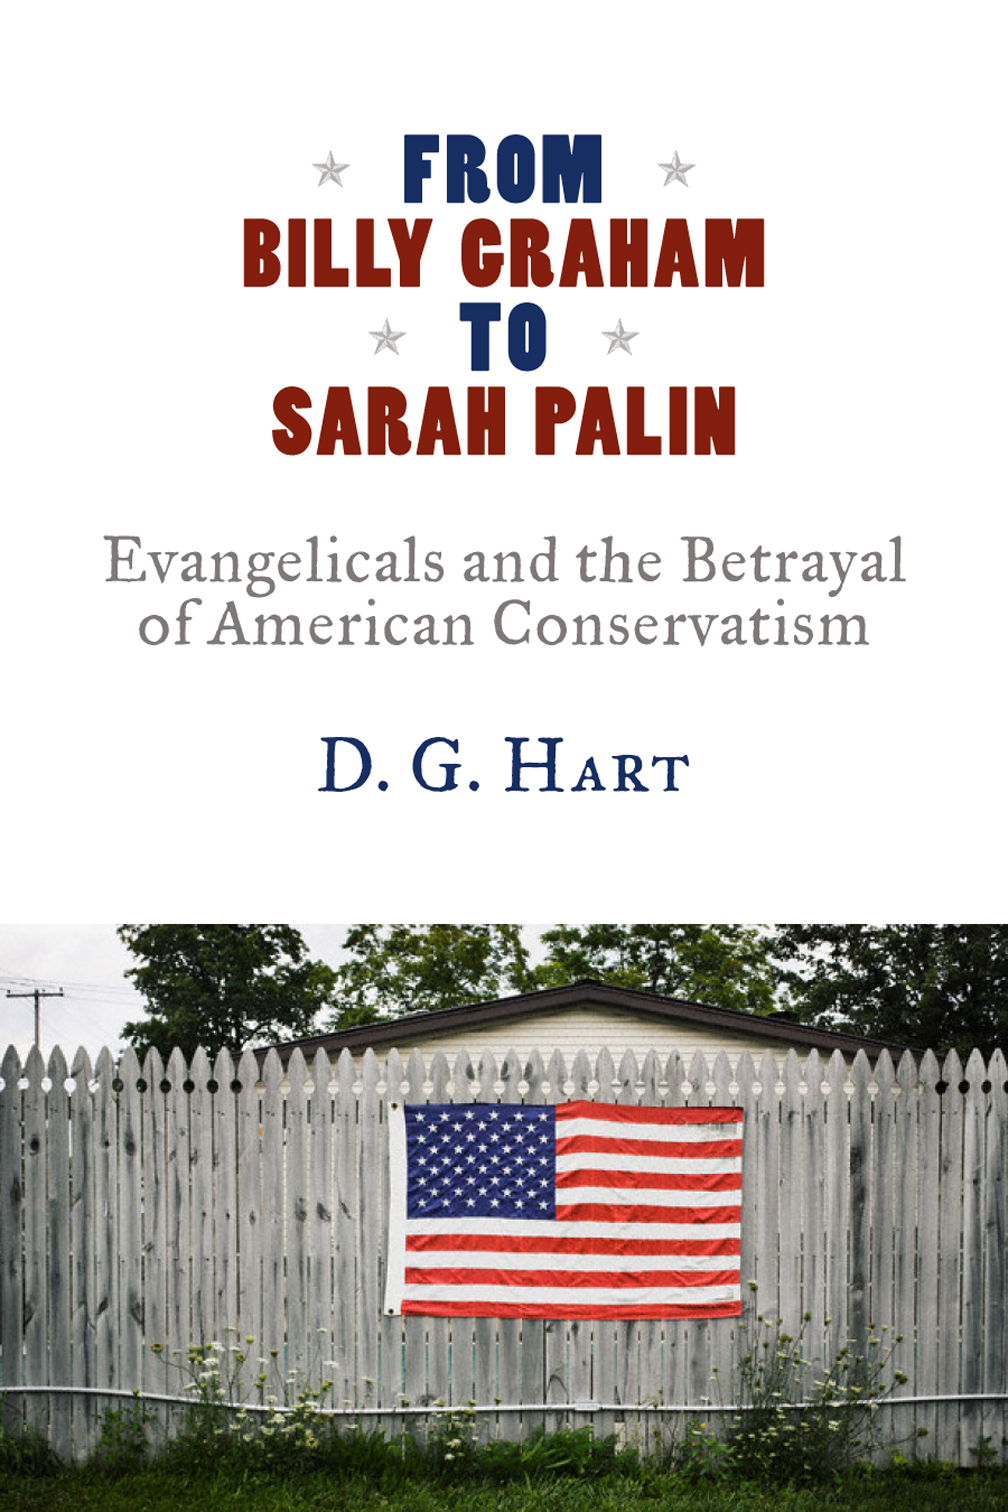 From Billy Graham to Sarah Palin